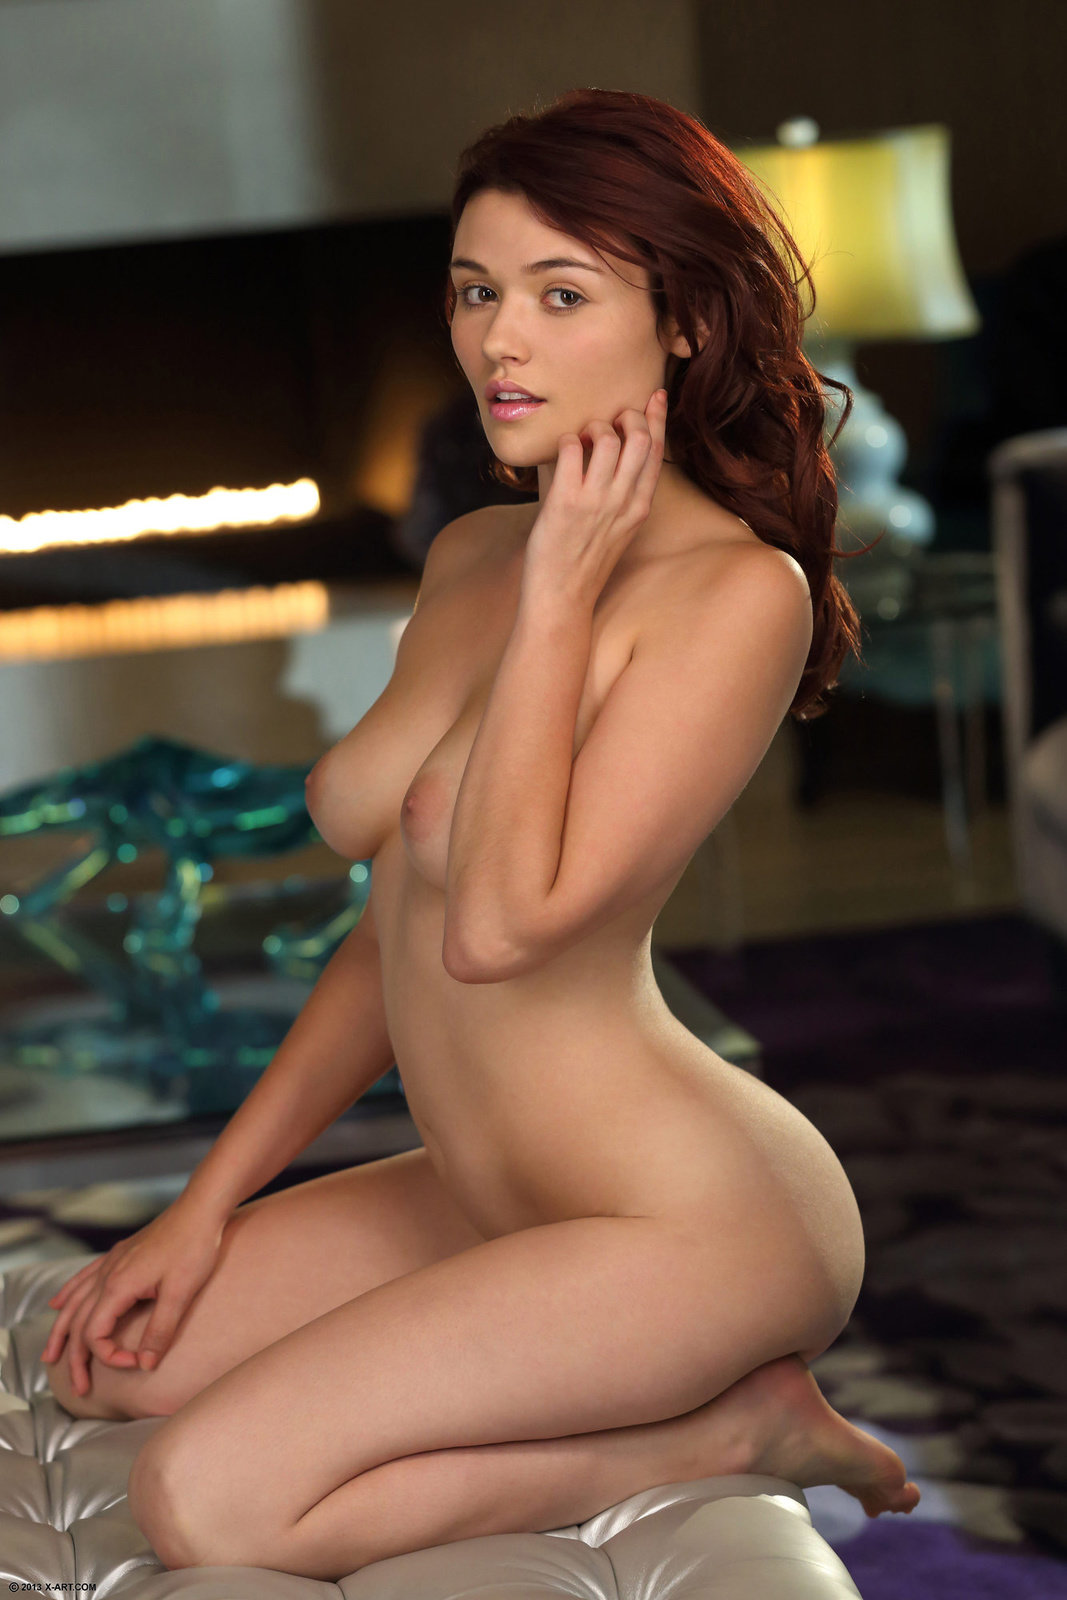 Beautiful Redhead Vixen Christine Poses Naked In The -9890